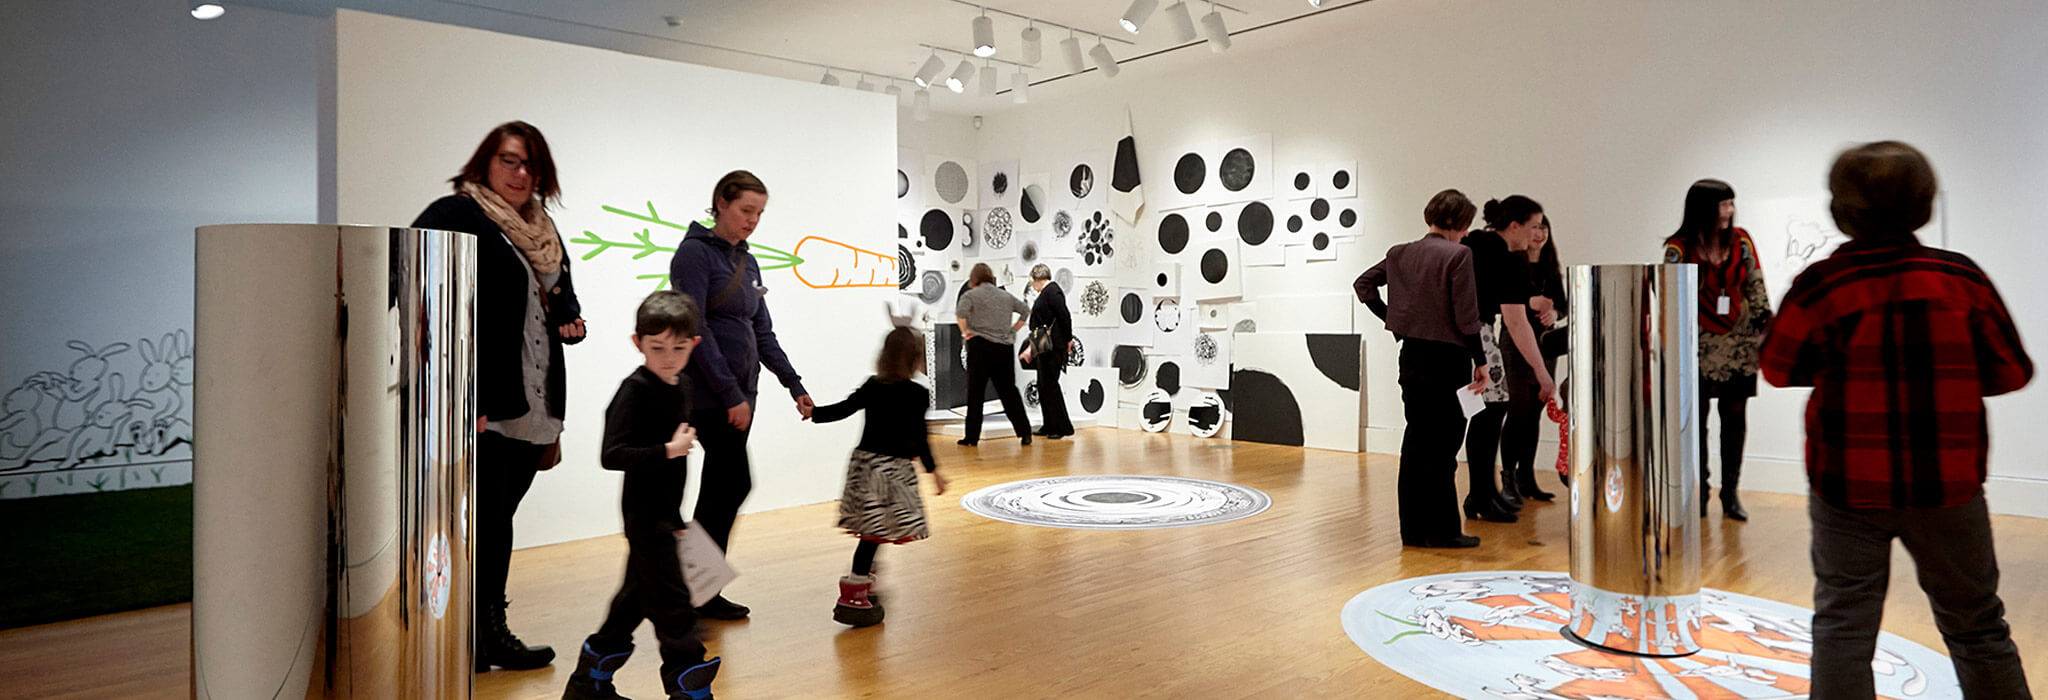 Art Gallery of Hamilton - Kids and Families